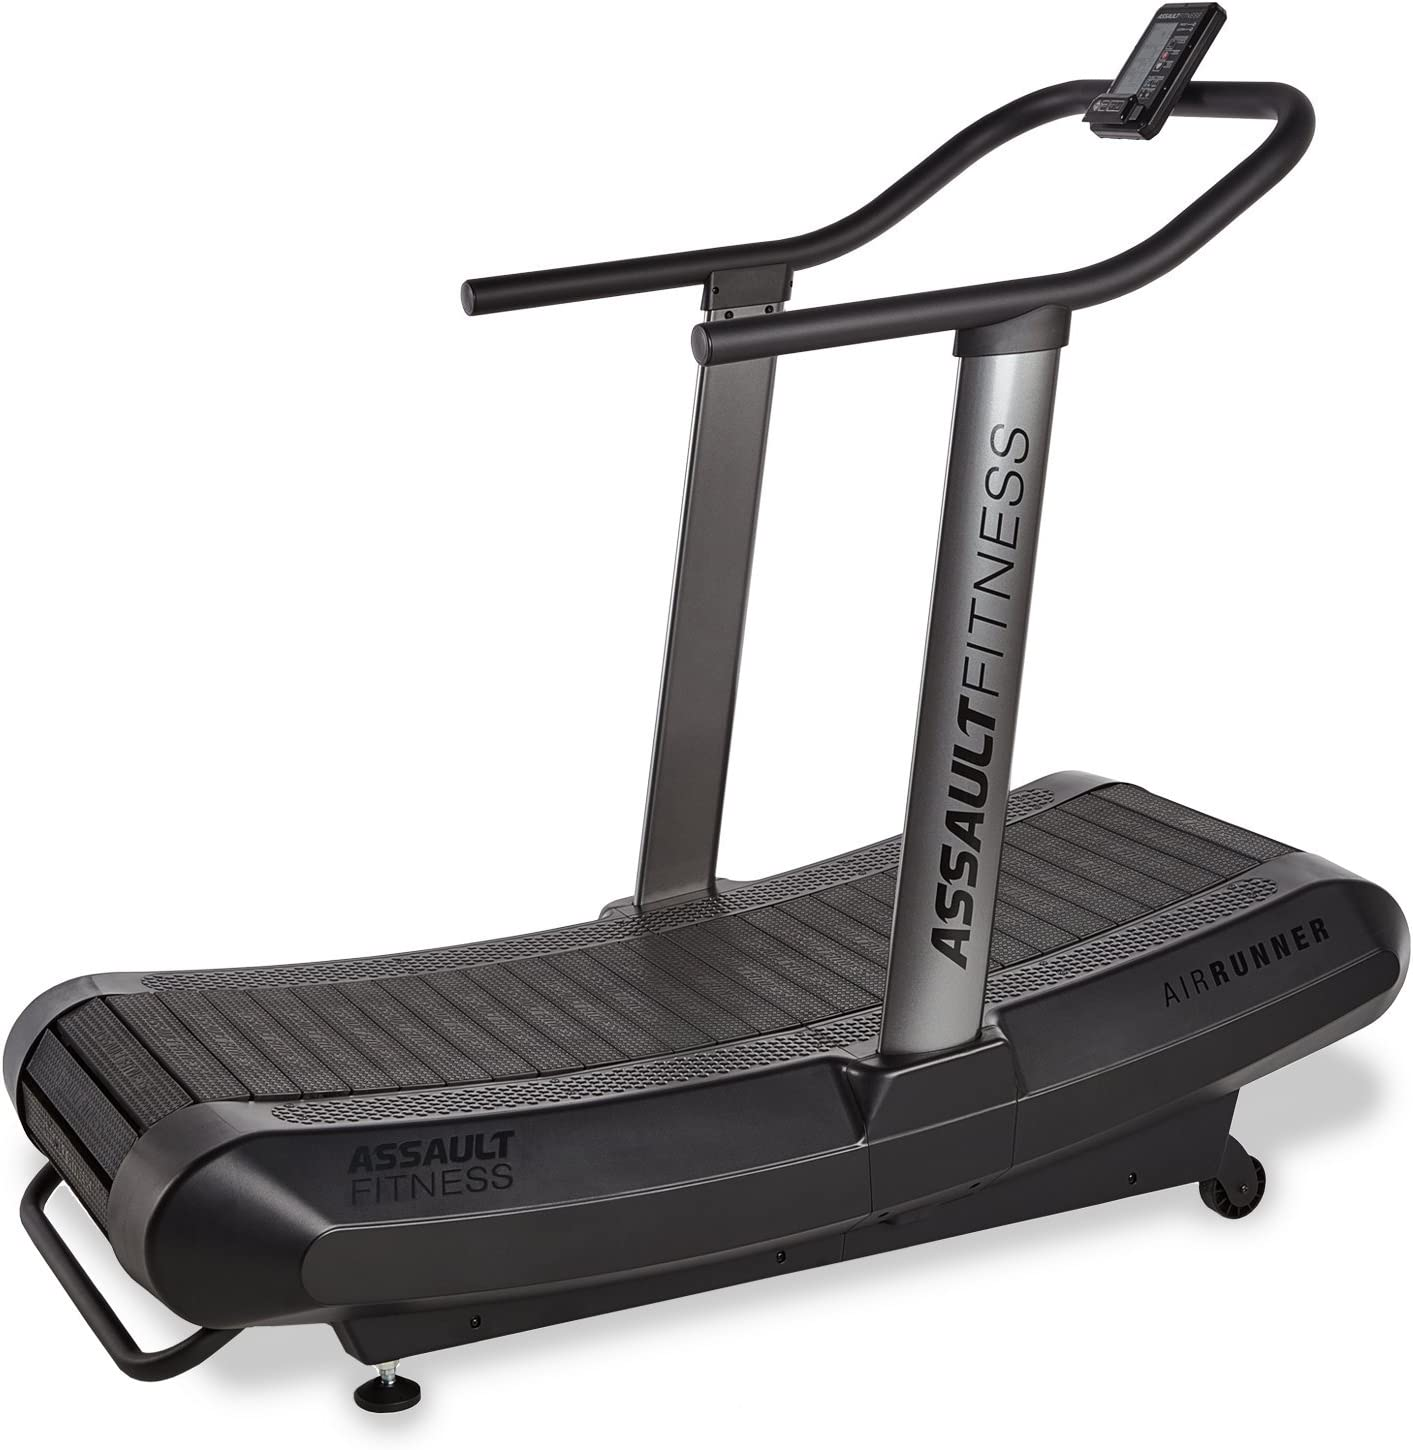 Assault Fitness AirRunner, Black Frame/Charcoal